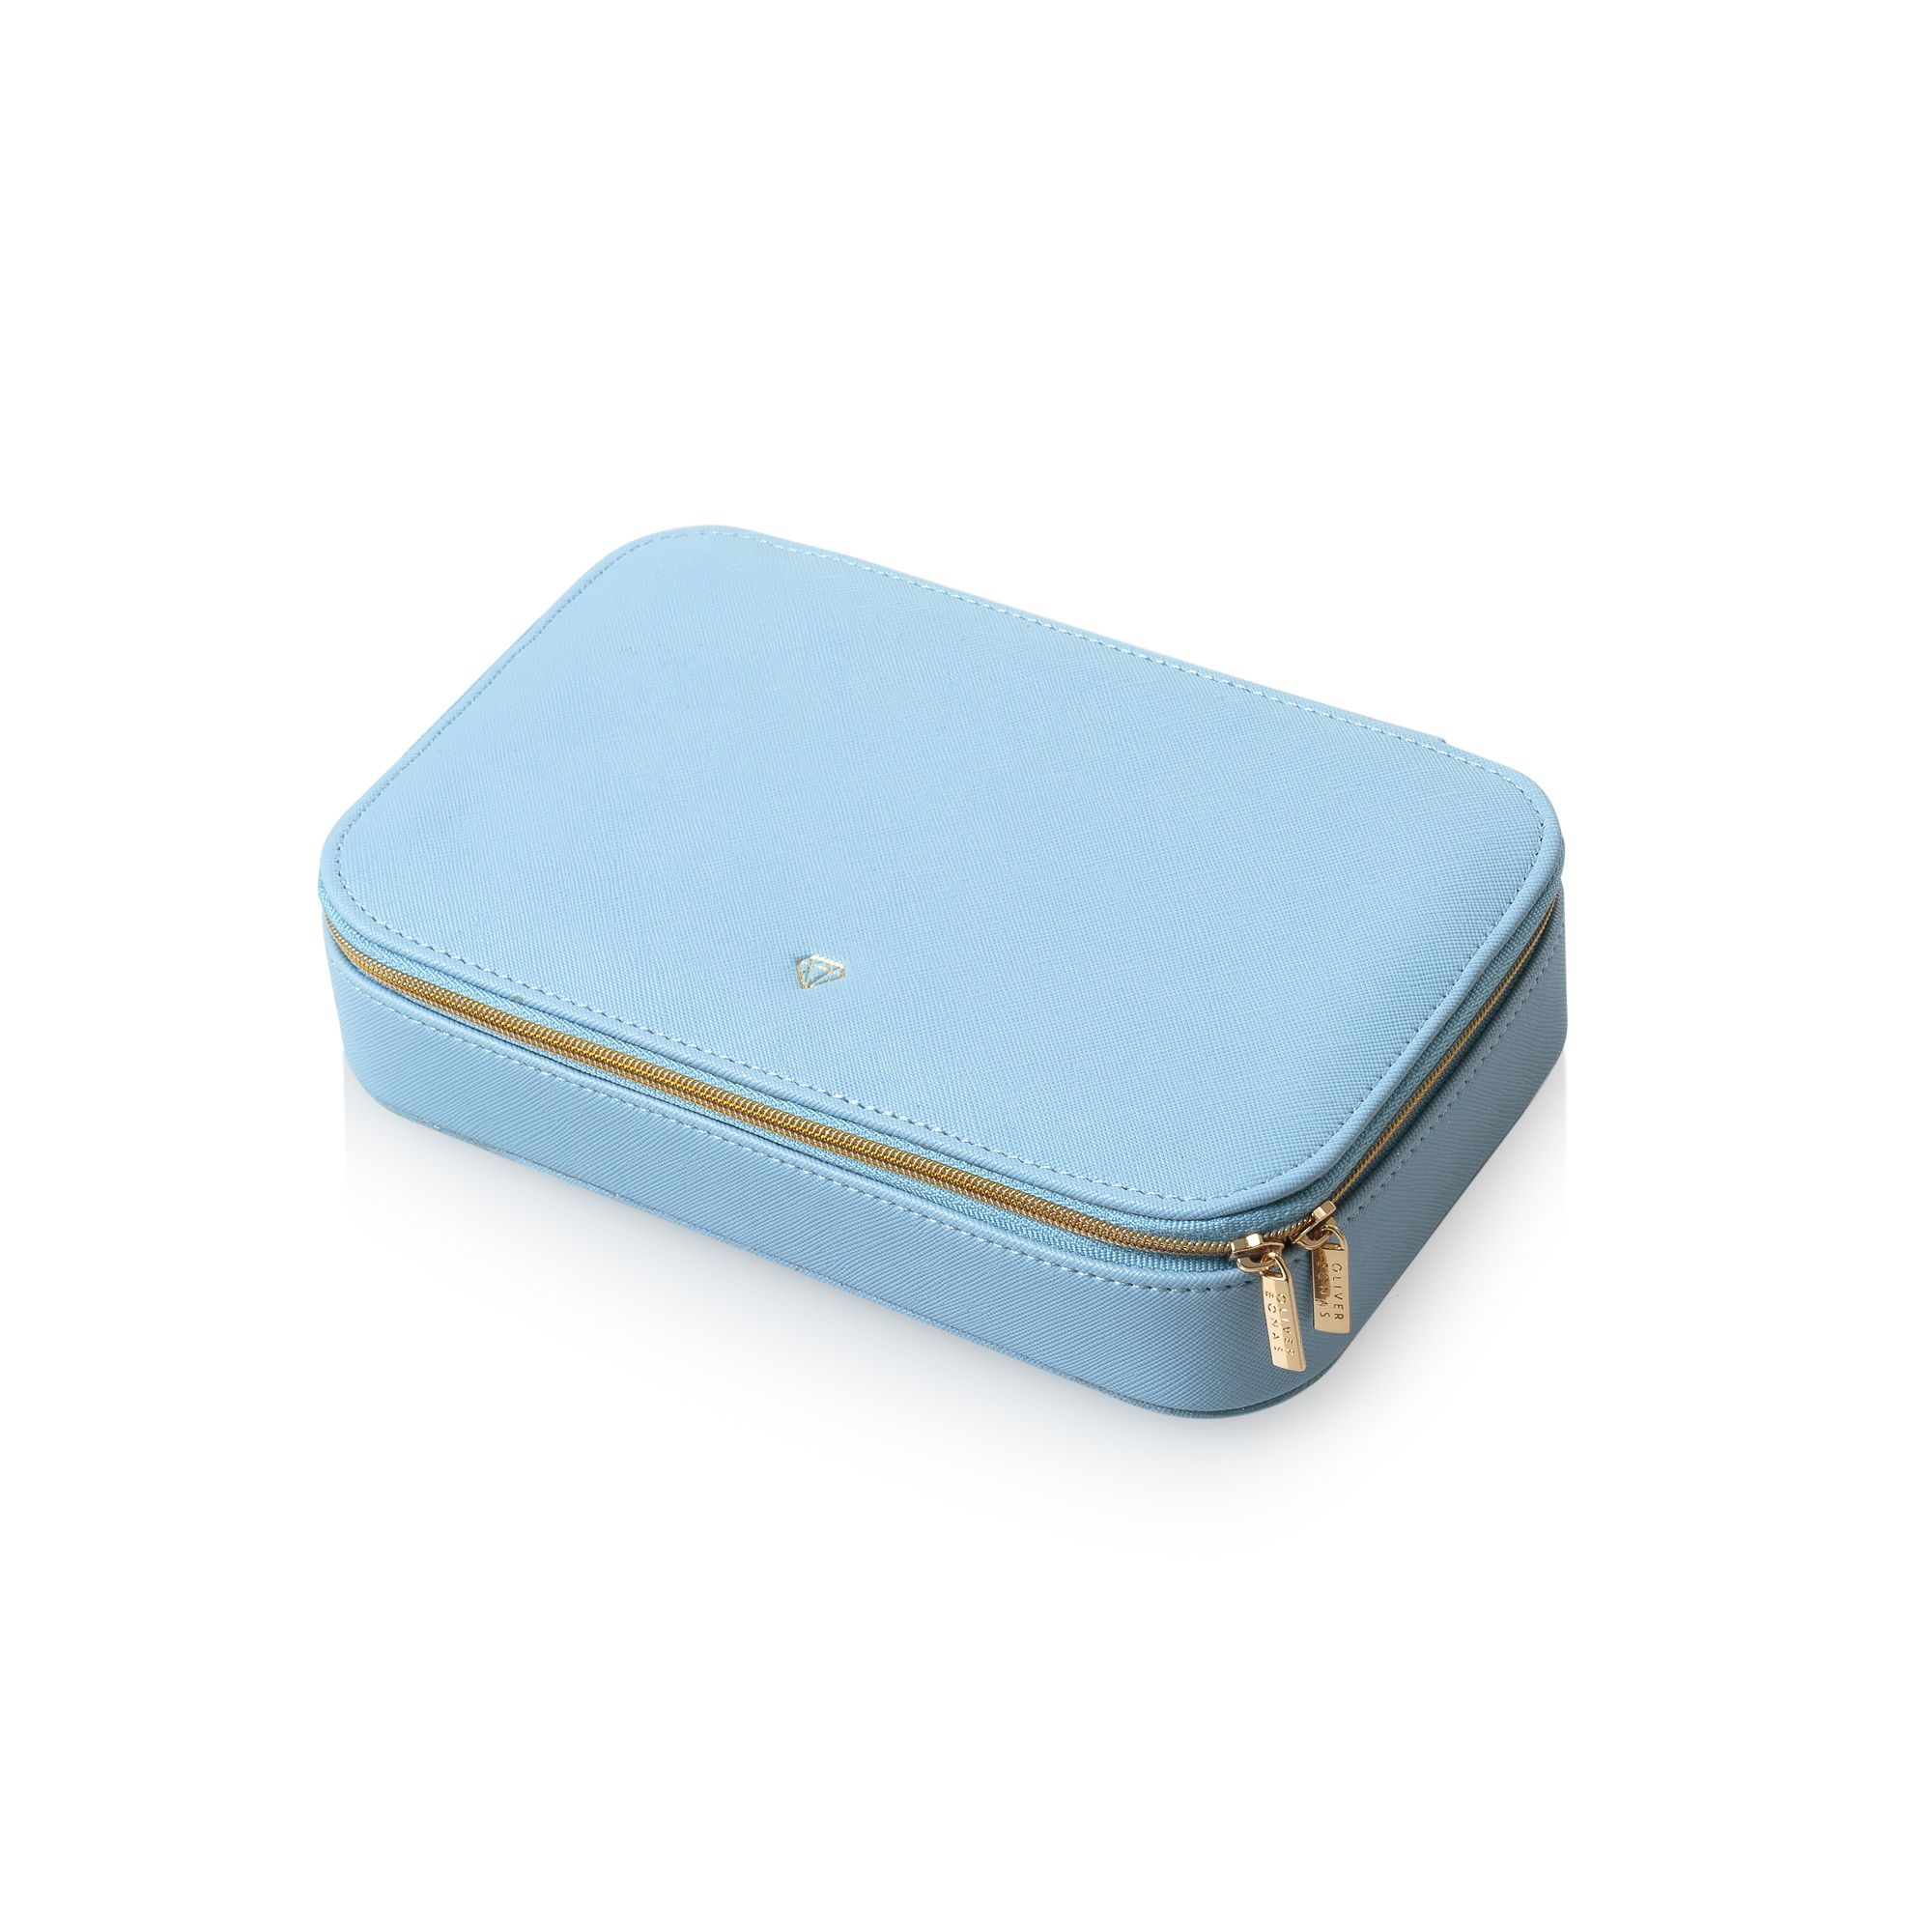 Amelia Large Travel Jewellery Box Travel jewelry box Travel